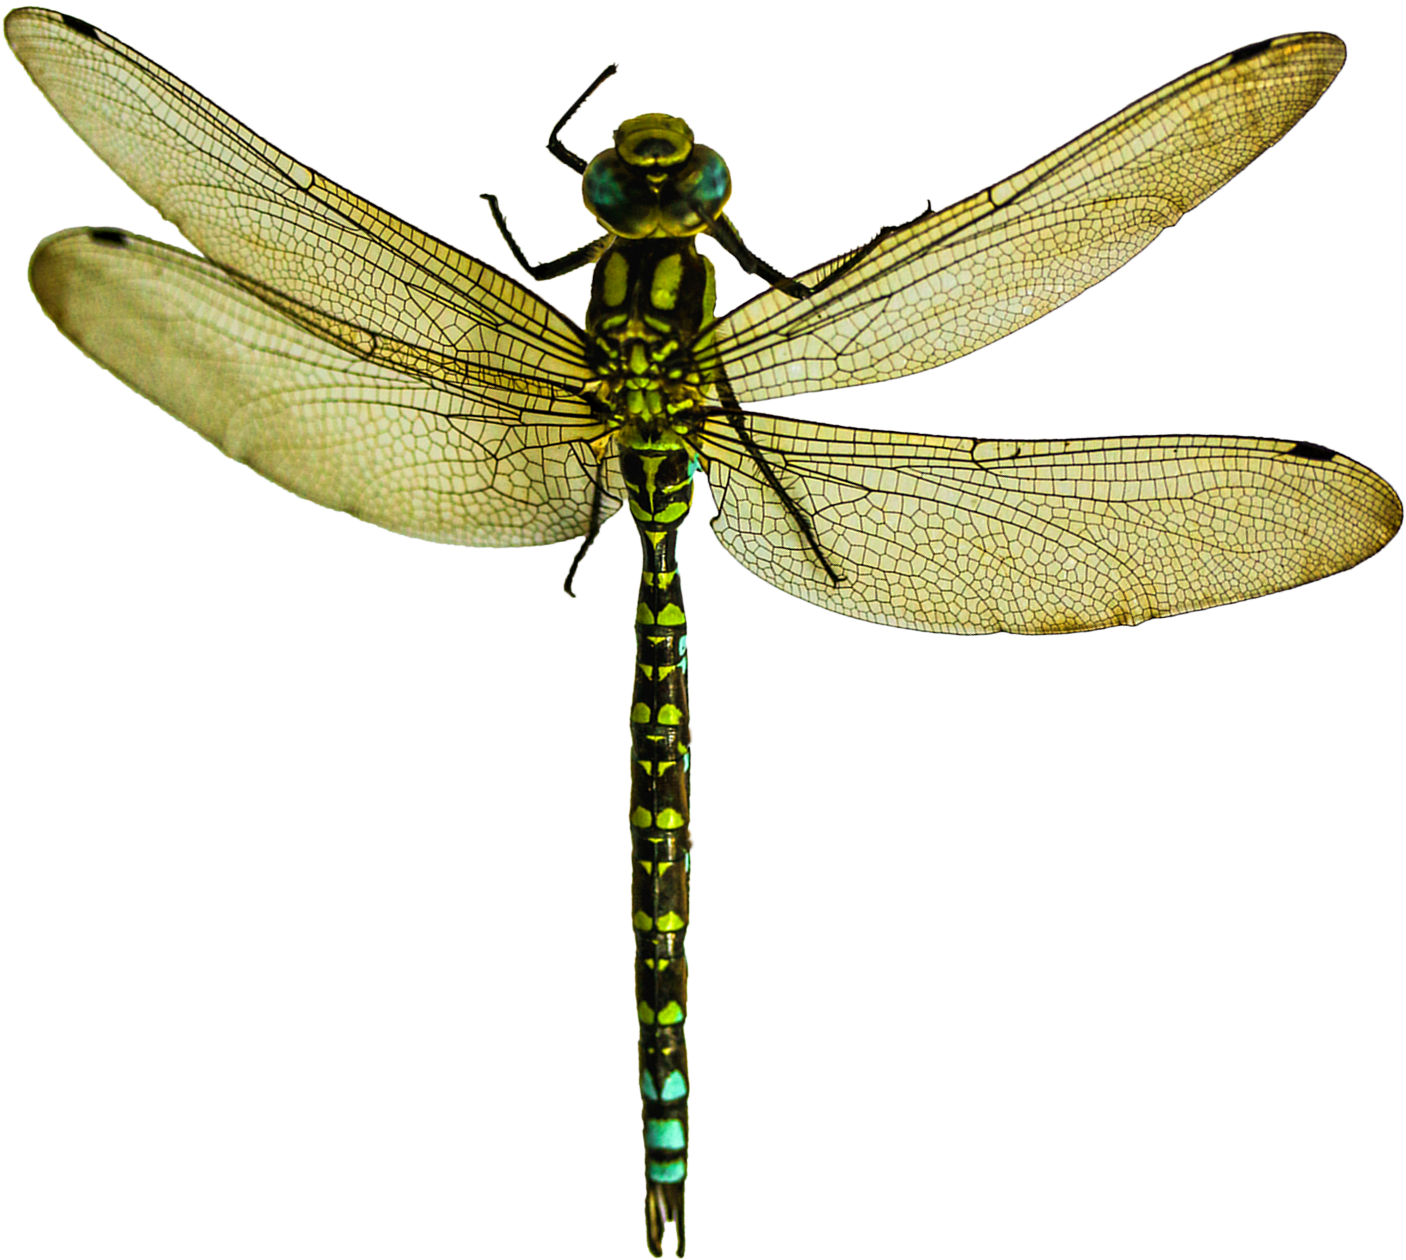 Dragonfly Png - Dragonfly Png (1583x1440)